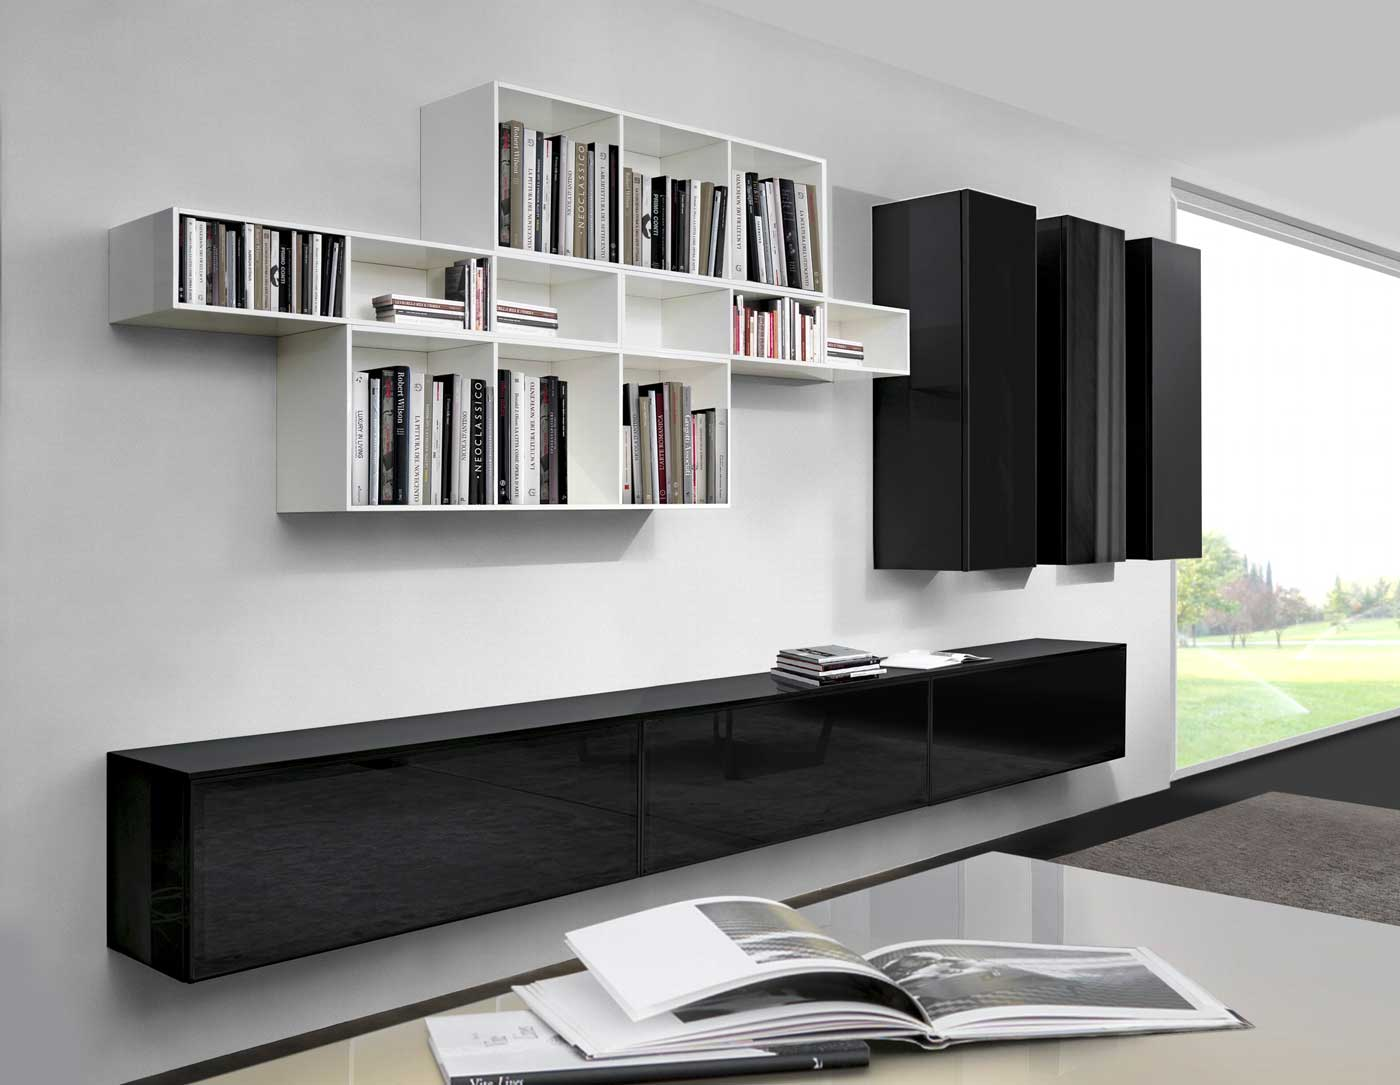 cerezo meubles decoration amenagement interieur design contemporain toulouse duvivier salont. Black Bedroom Furniture Sets. Home Design Ideas